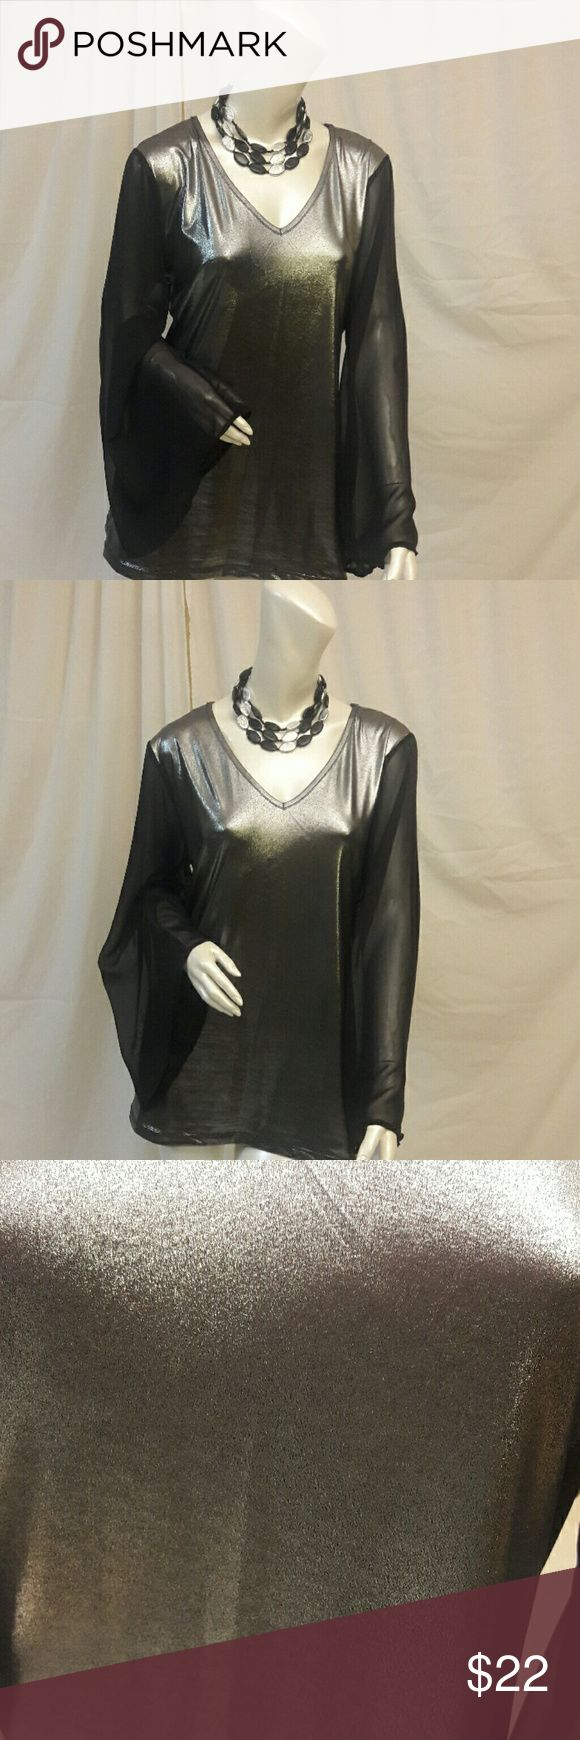 PLUS SIZE Metallic blouse with Sheer sleeves Silver metallic blouse with black silky bell shapes sleeves. Perfect for a night on the town! Ashley Stewart Tops Blouses